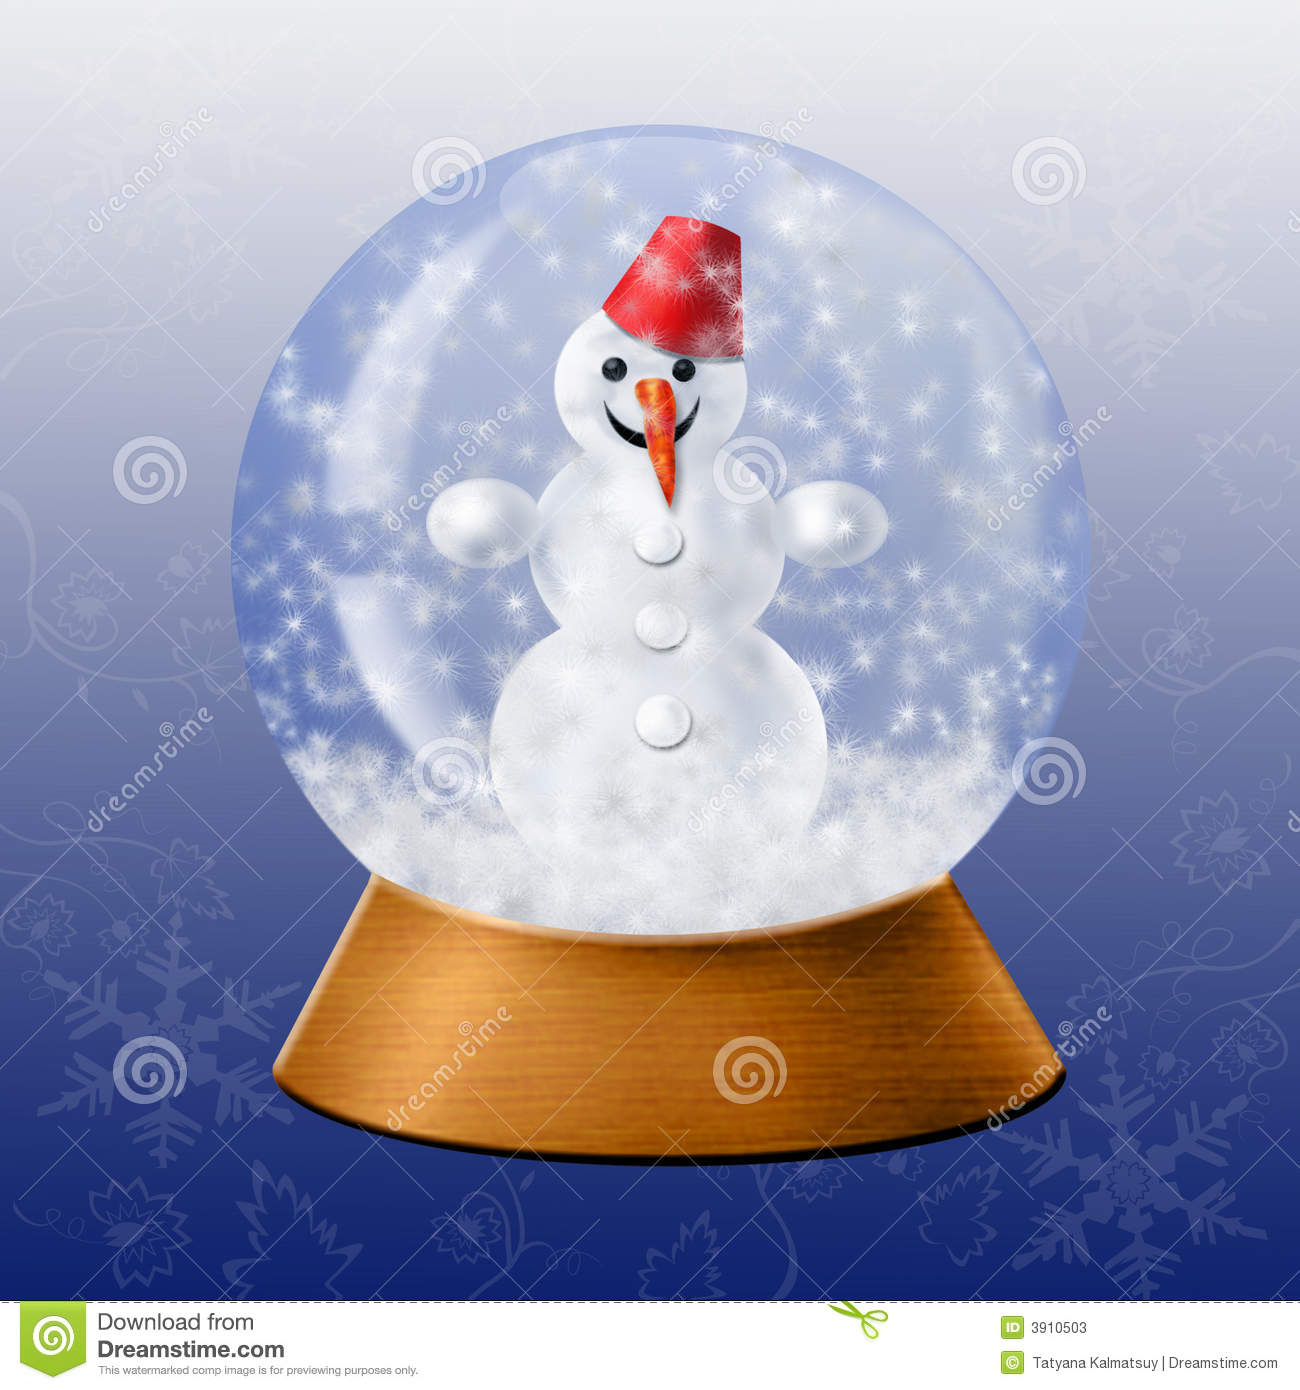 Glass snow ball stock illustration of